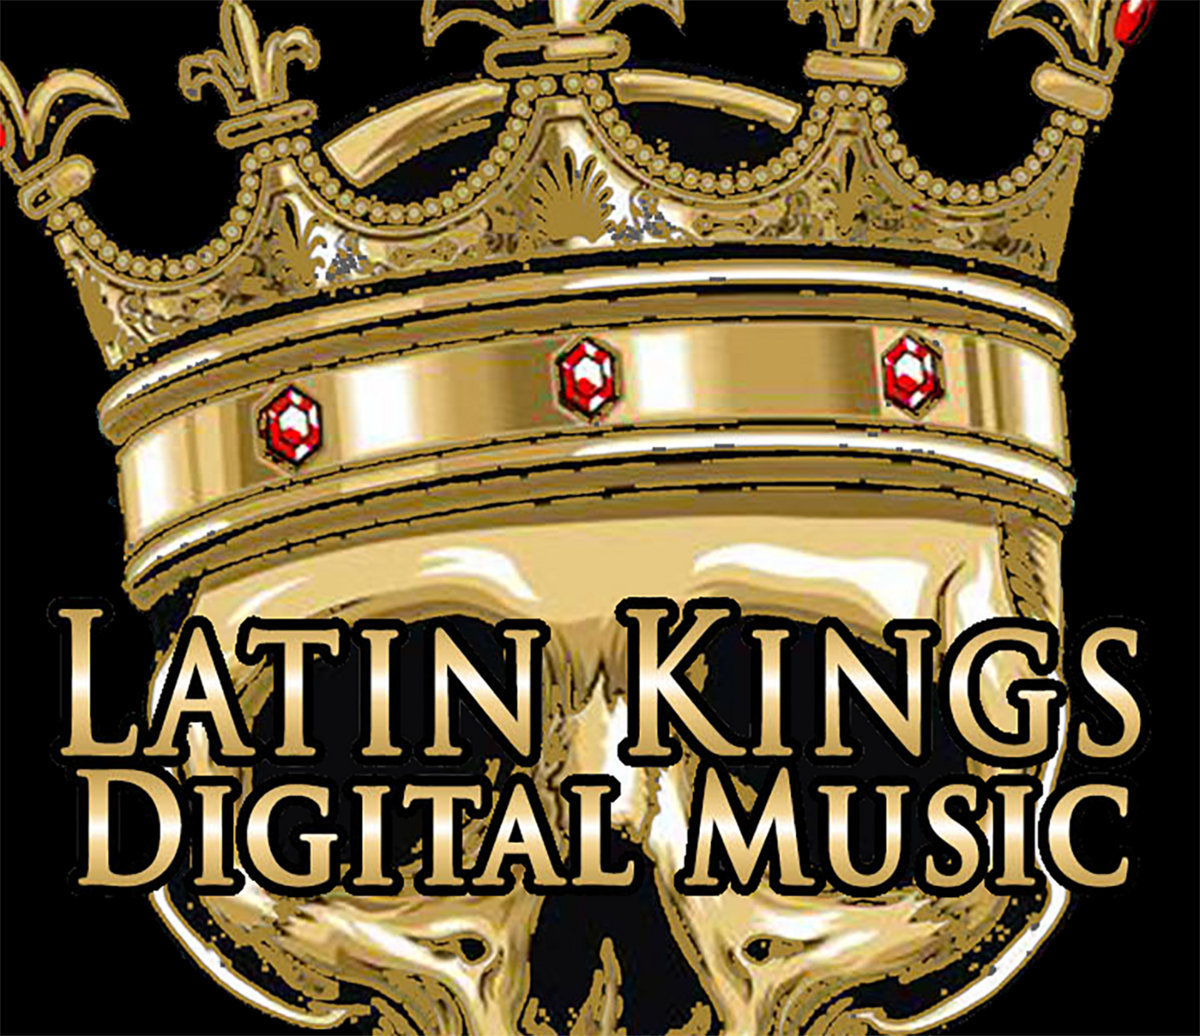 latin kings The latin kings was a swedish hiphop/rap-group founded by dogge doggelito, rodde & dj salla in 1993chepe joined the group, following rodde parting the group and joining up with infinite massthe group has since parted the lead rapper dogge doggelito released his first solo album in november 2007.